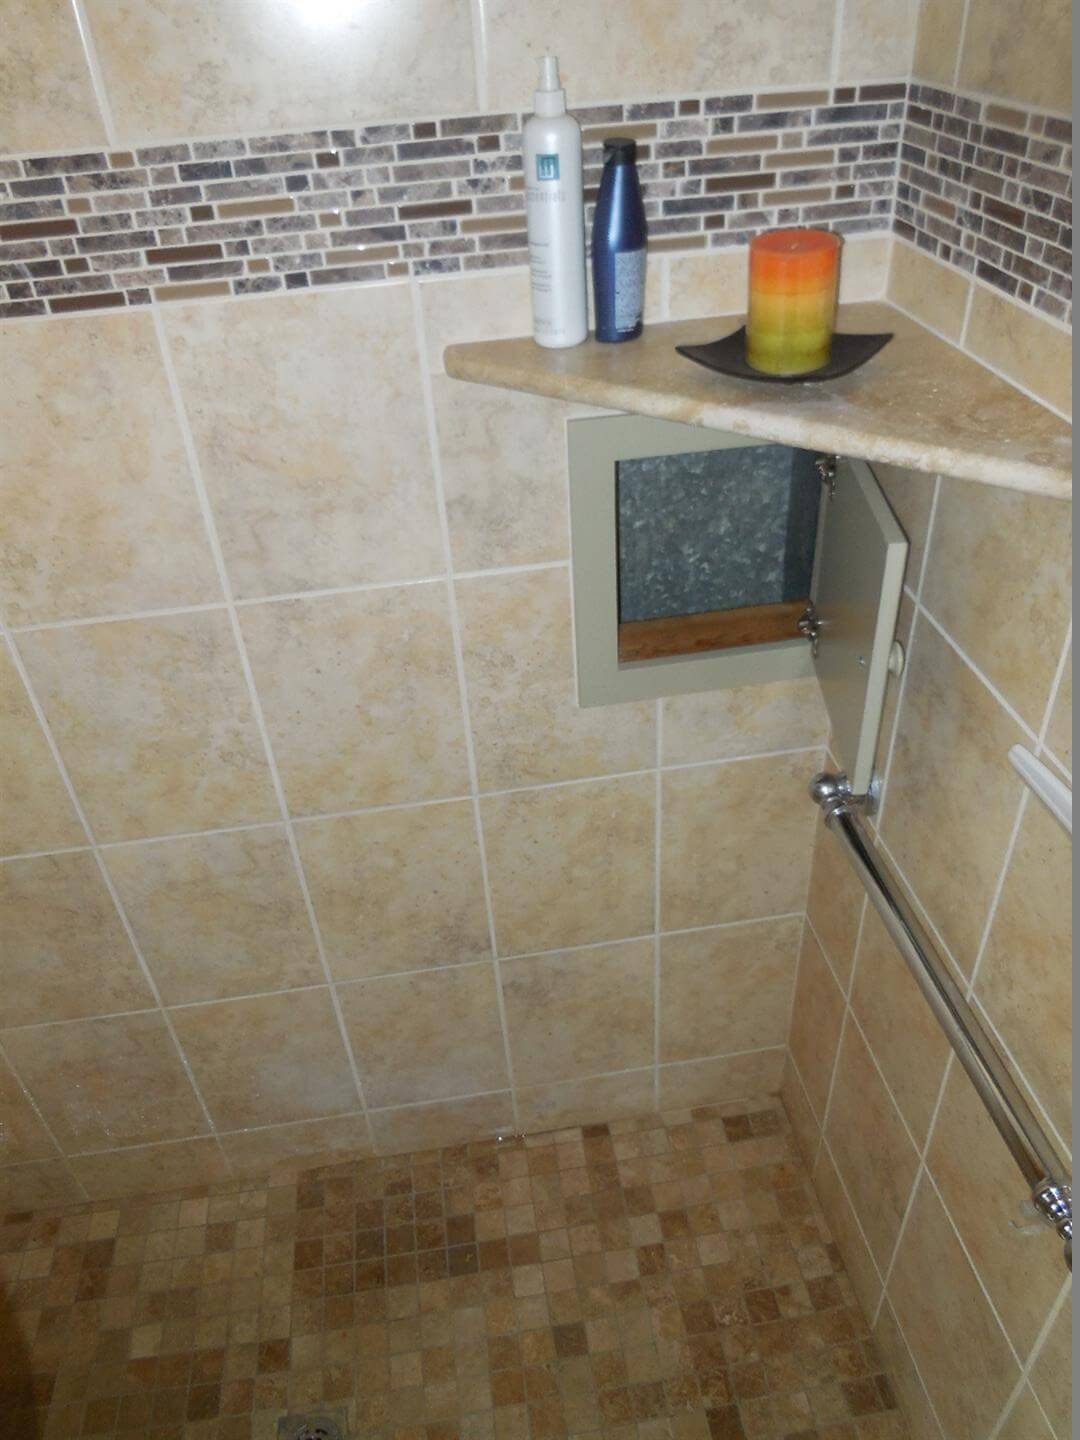 Top 20 Home Inspection Photos From 2013